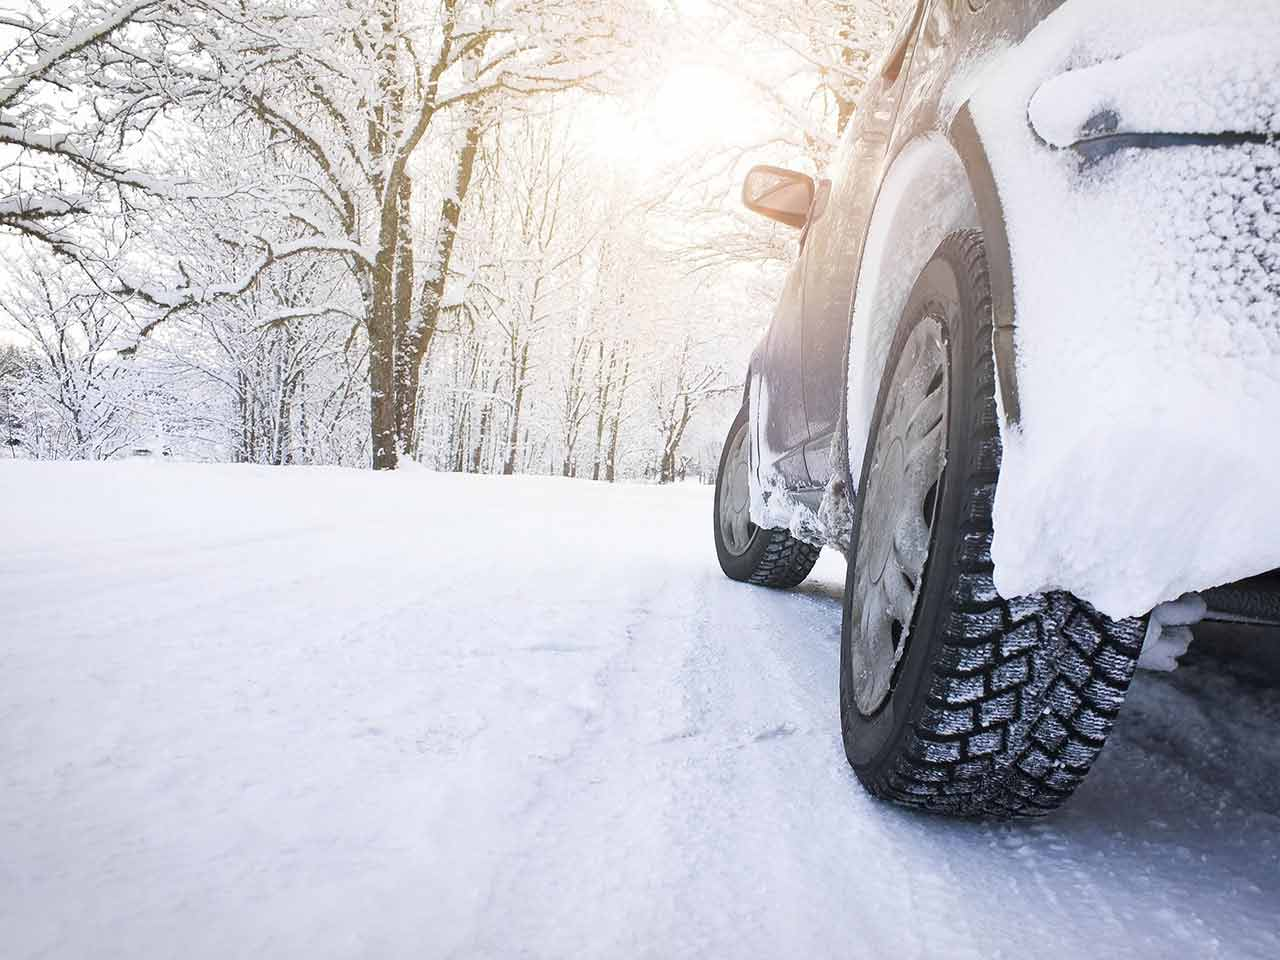 Car tyre against a winter road backdrop